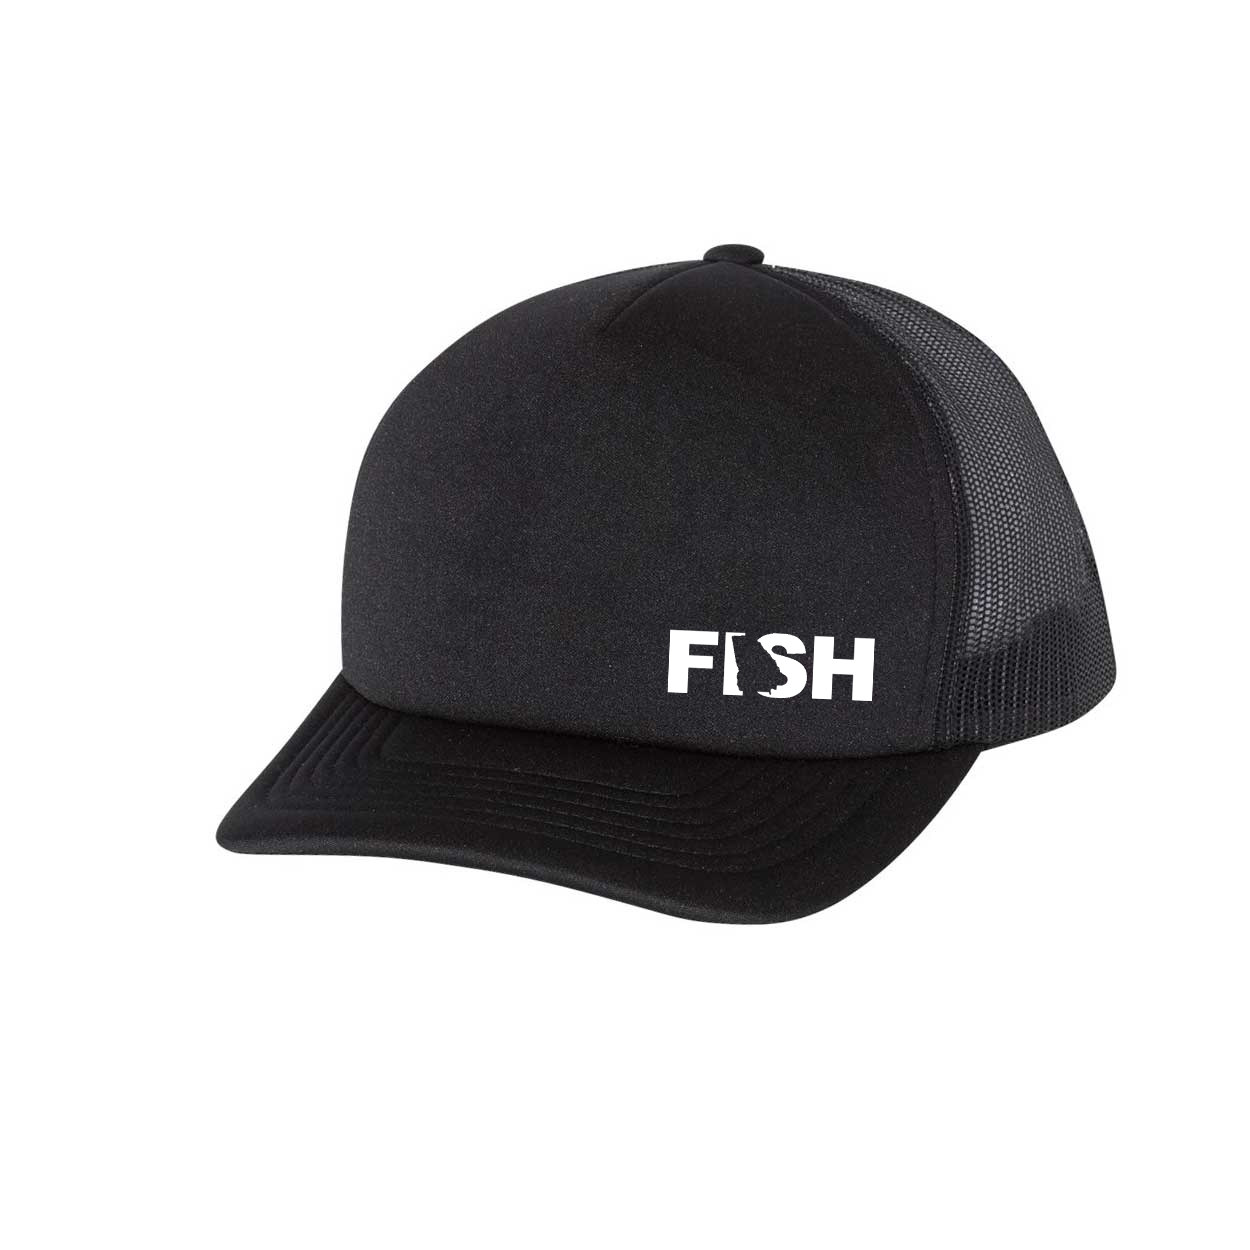 Fish Georgia Night Out Premium Foam Trucker Snapback Hat Black (White Logo)